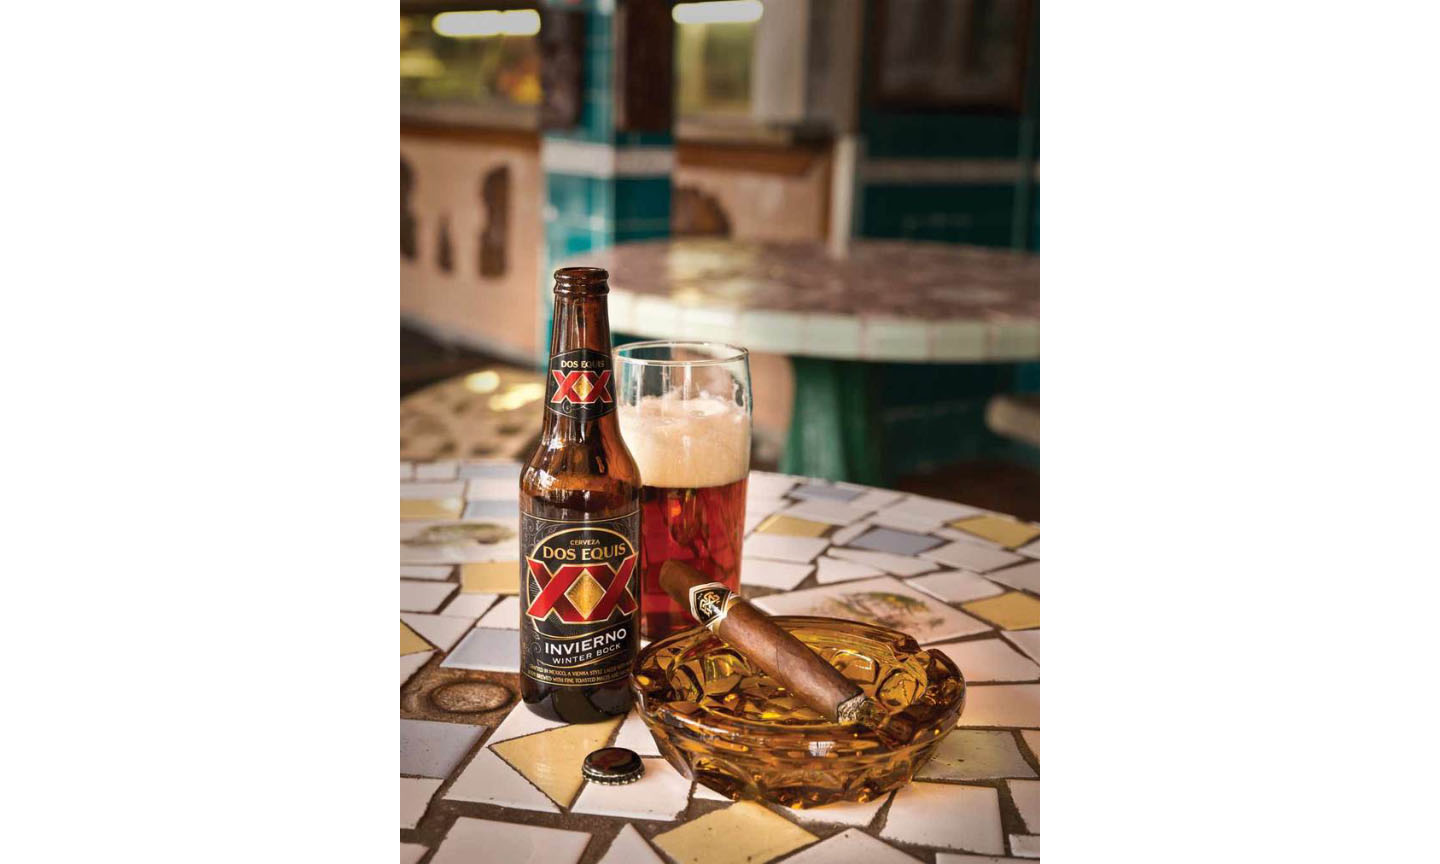 Perfect Pairings – Dos Equis Invierno Winter Bock & BG Meyer Standard Issue